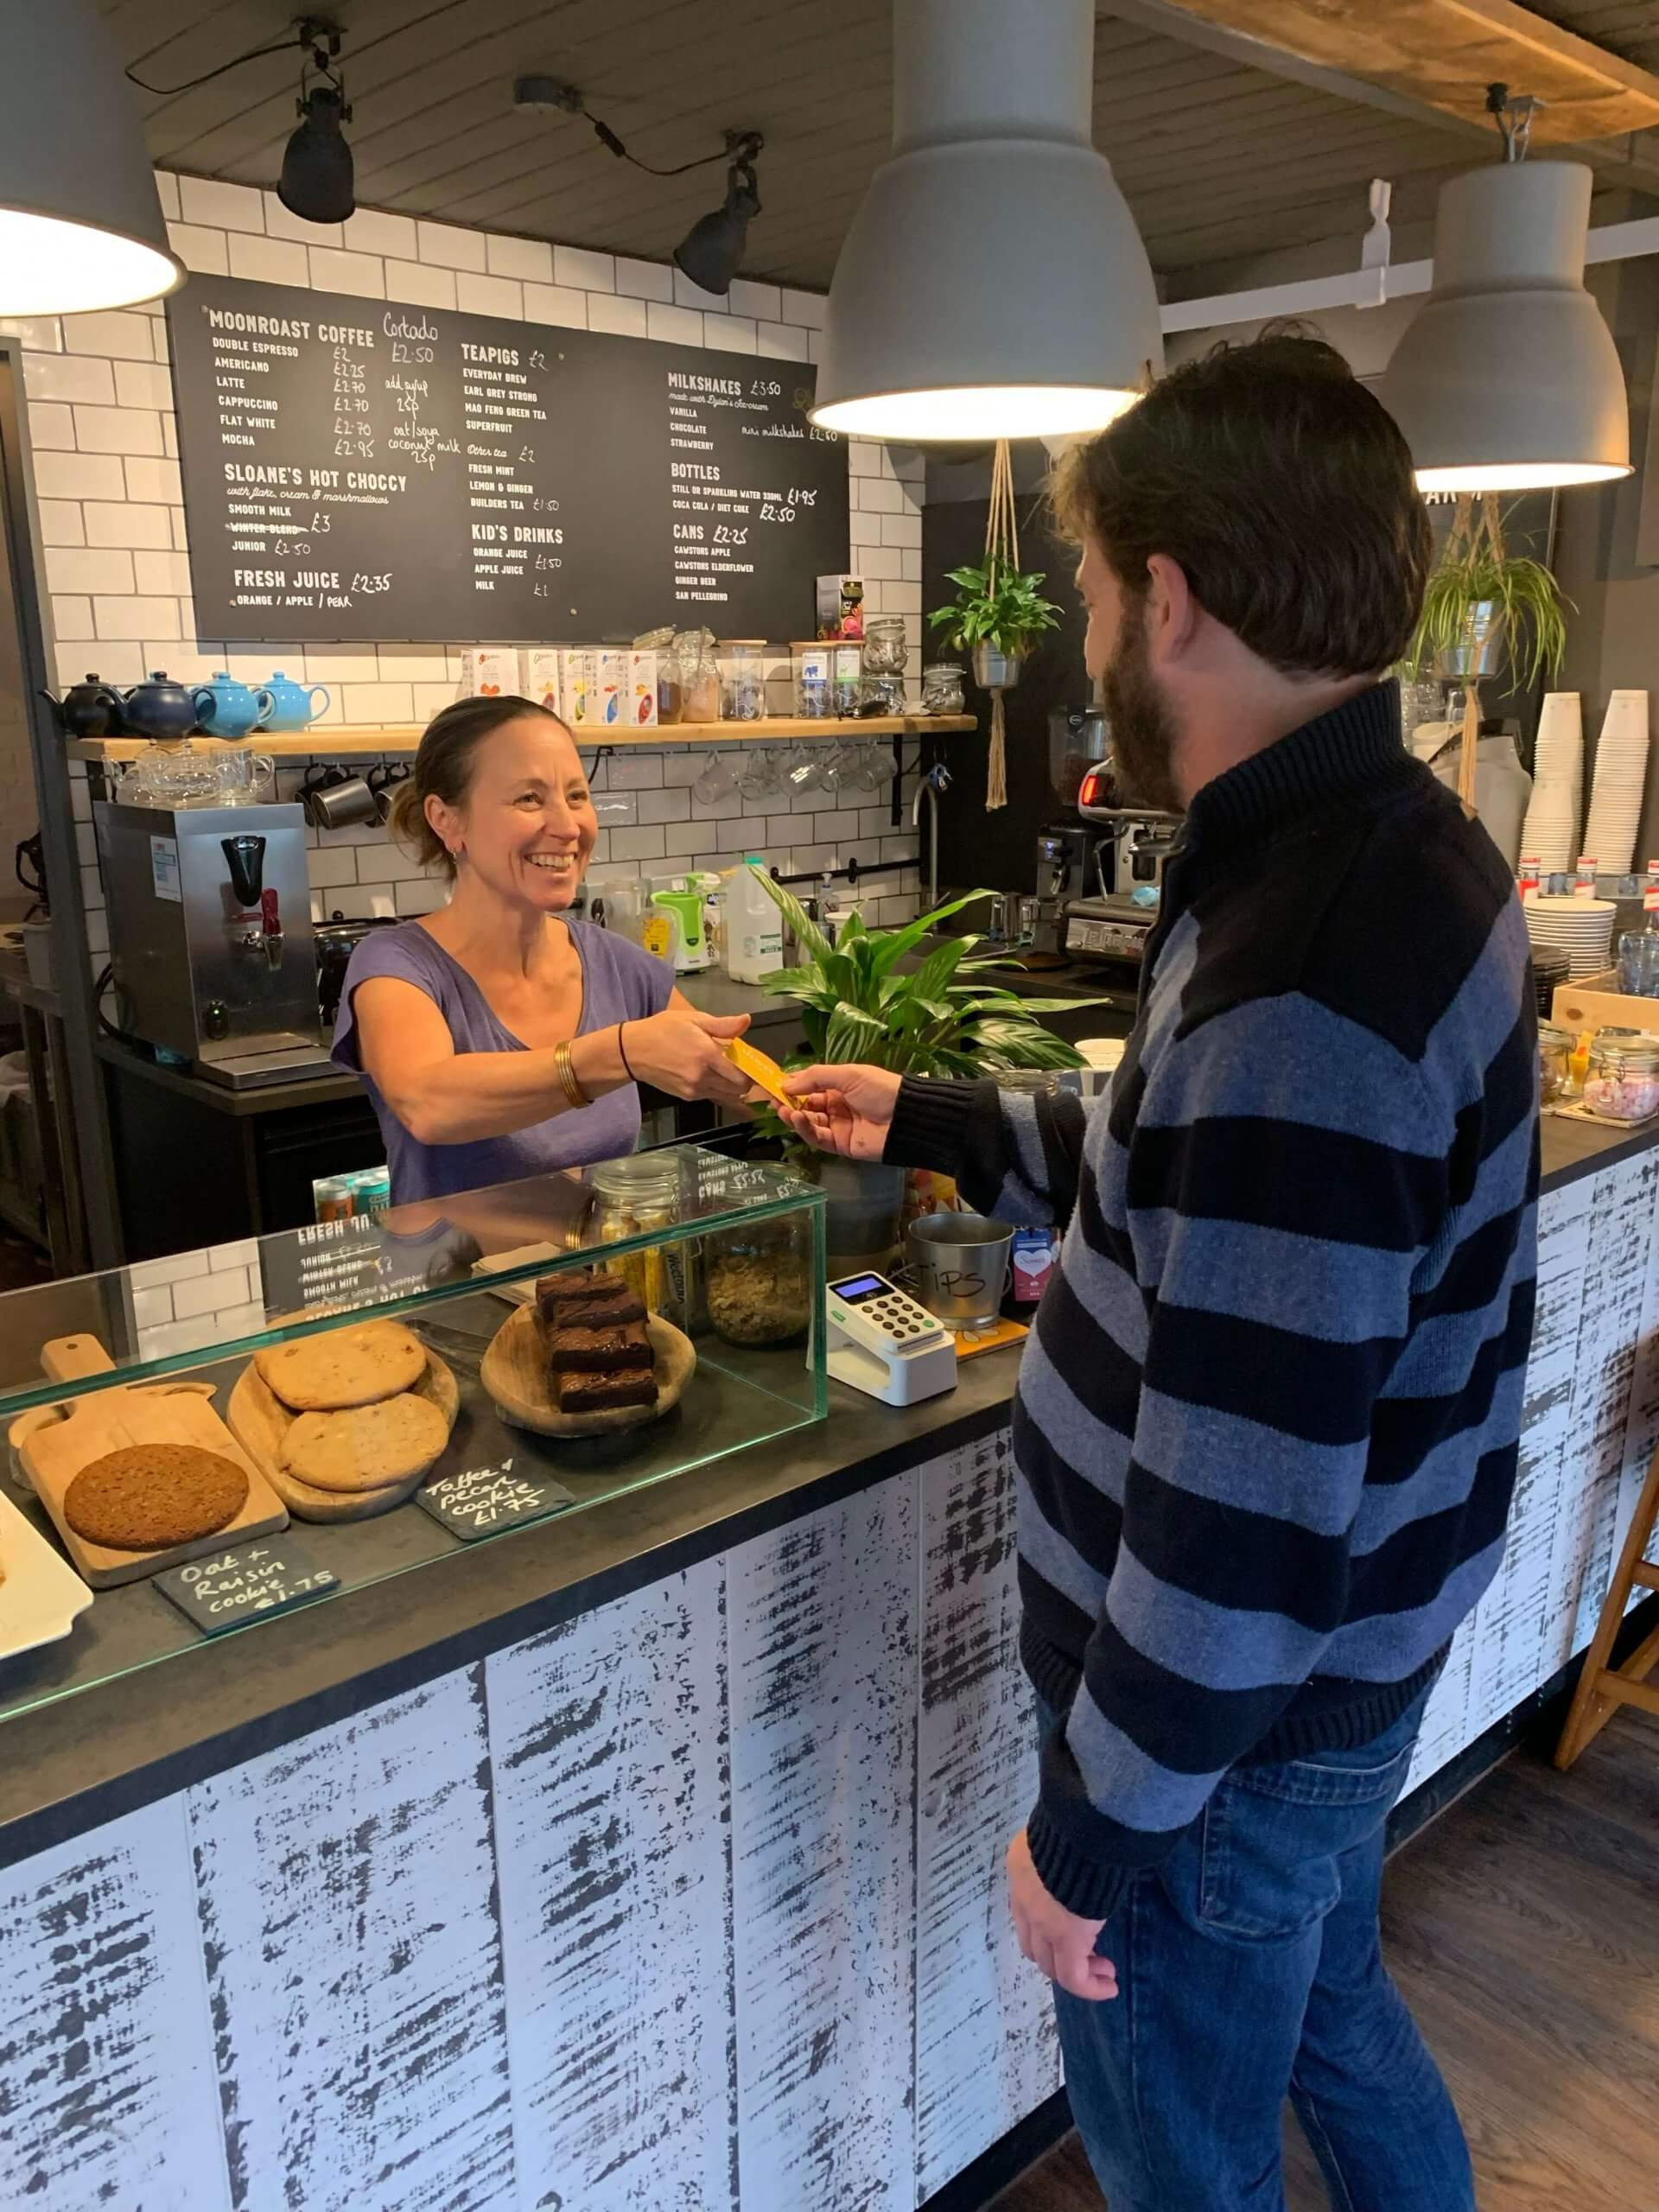 Serving in a Cafe | The Mustcard